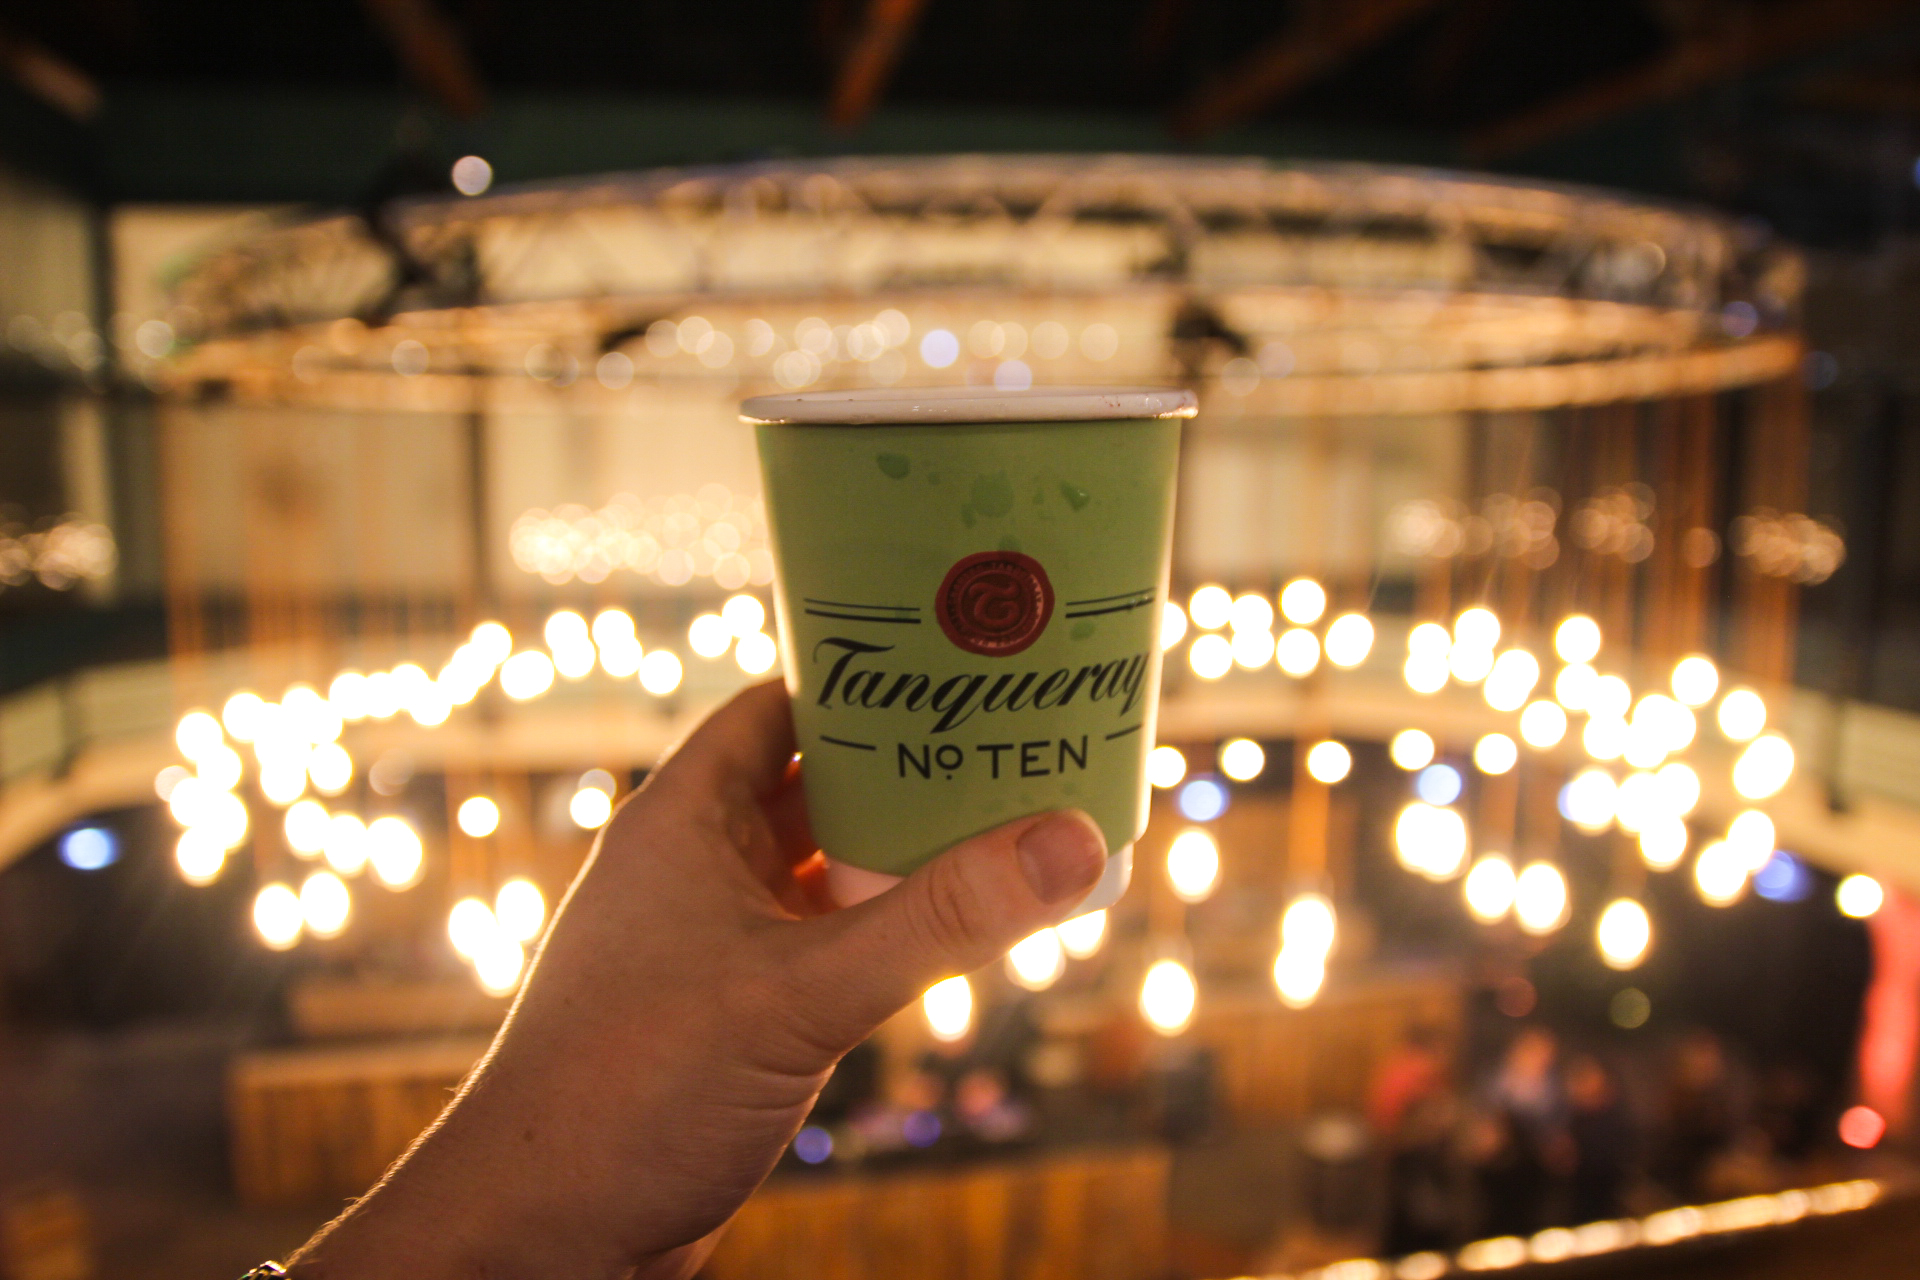 tanqueray at taste of london